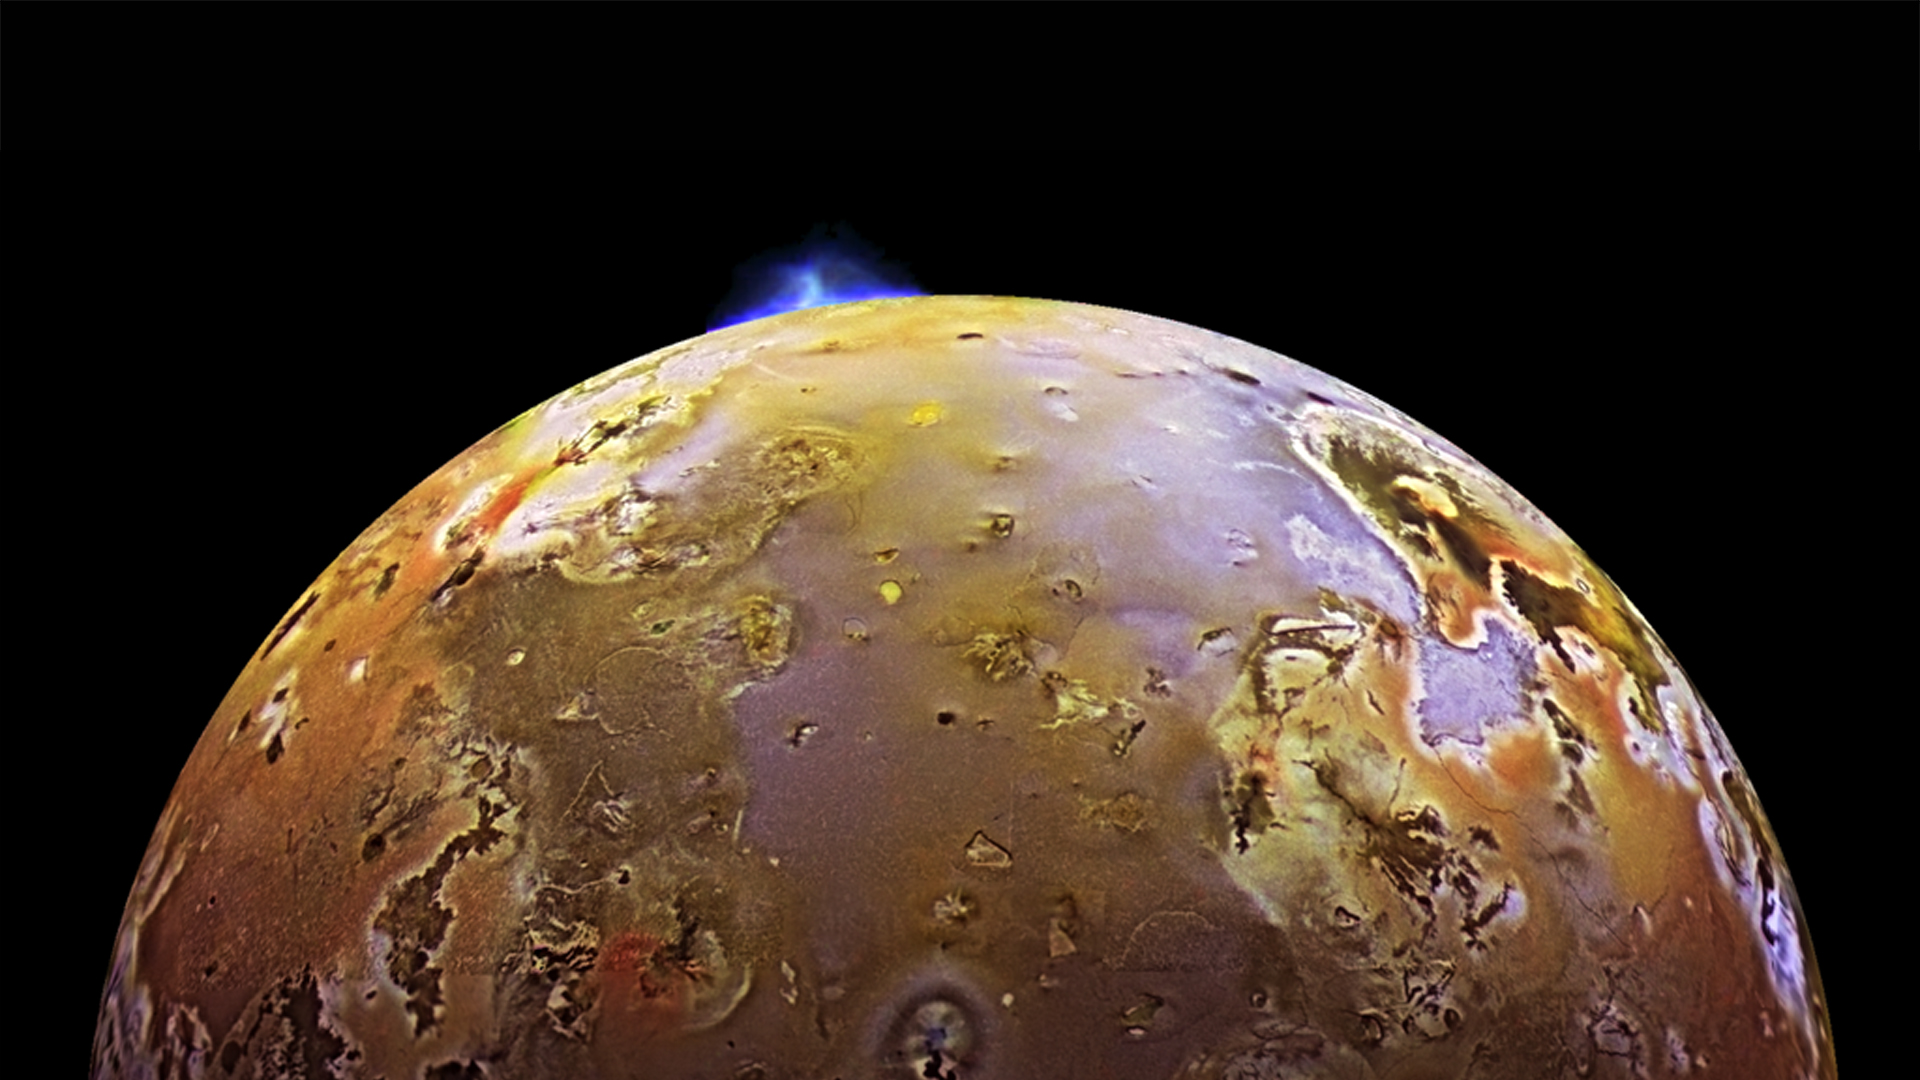 2. Jupiter's moon Io has towering volcanic eruptions